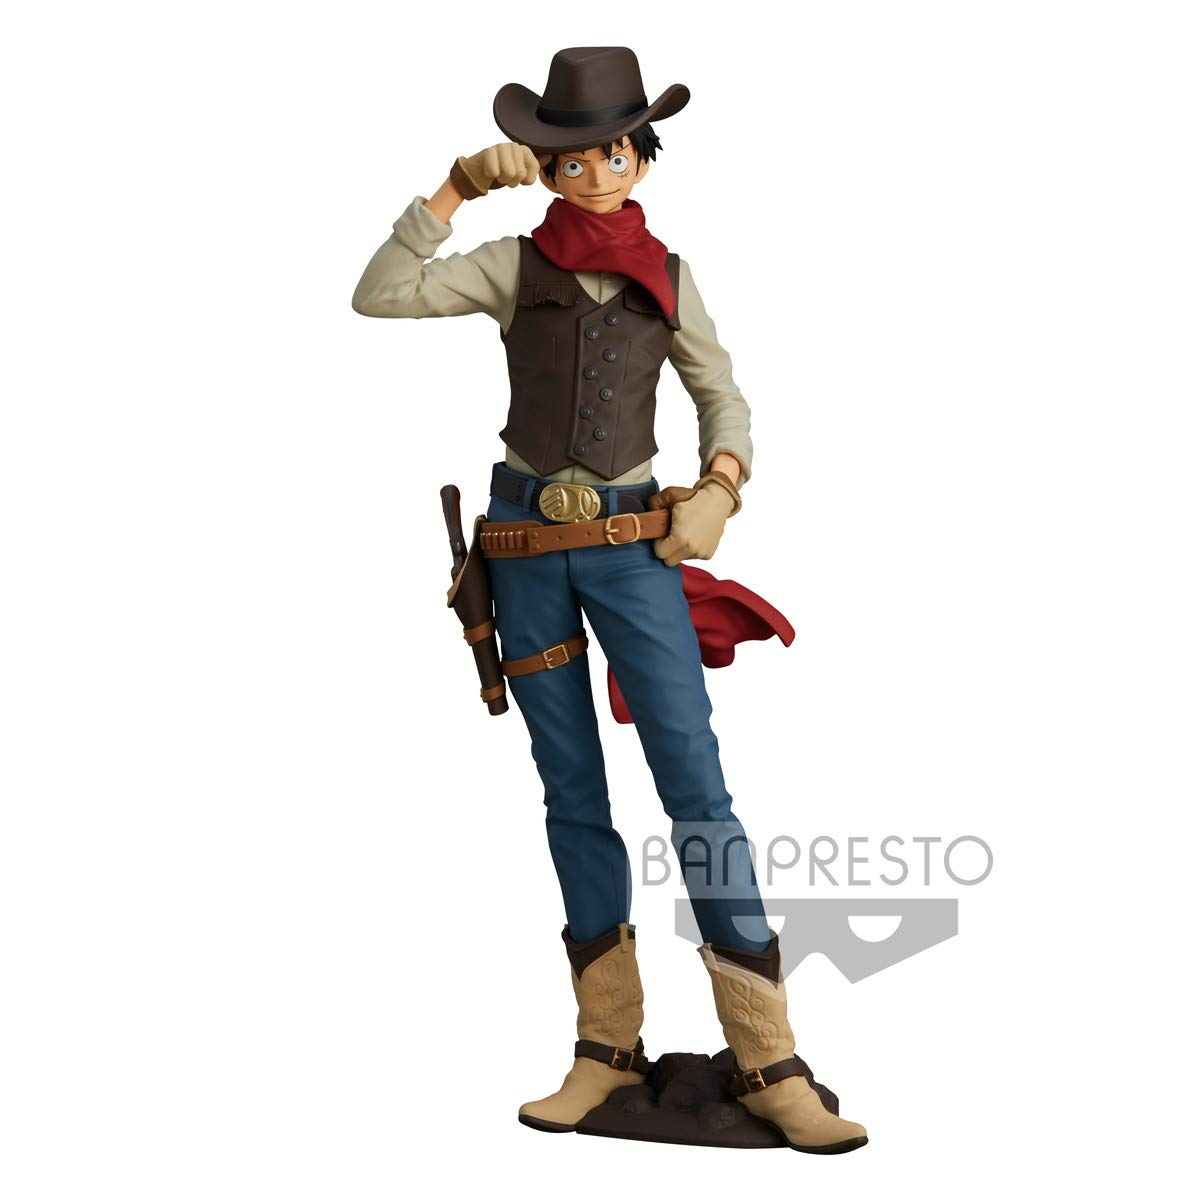 Monkey D. Luffy, Treasure Cruise World Journey Vol. 1, One Piece, Banpresto